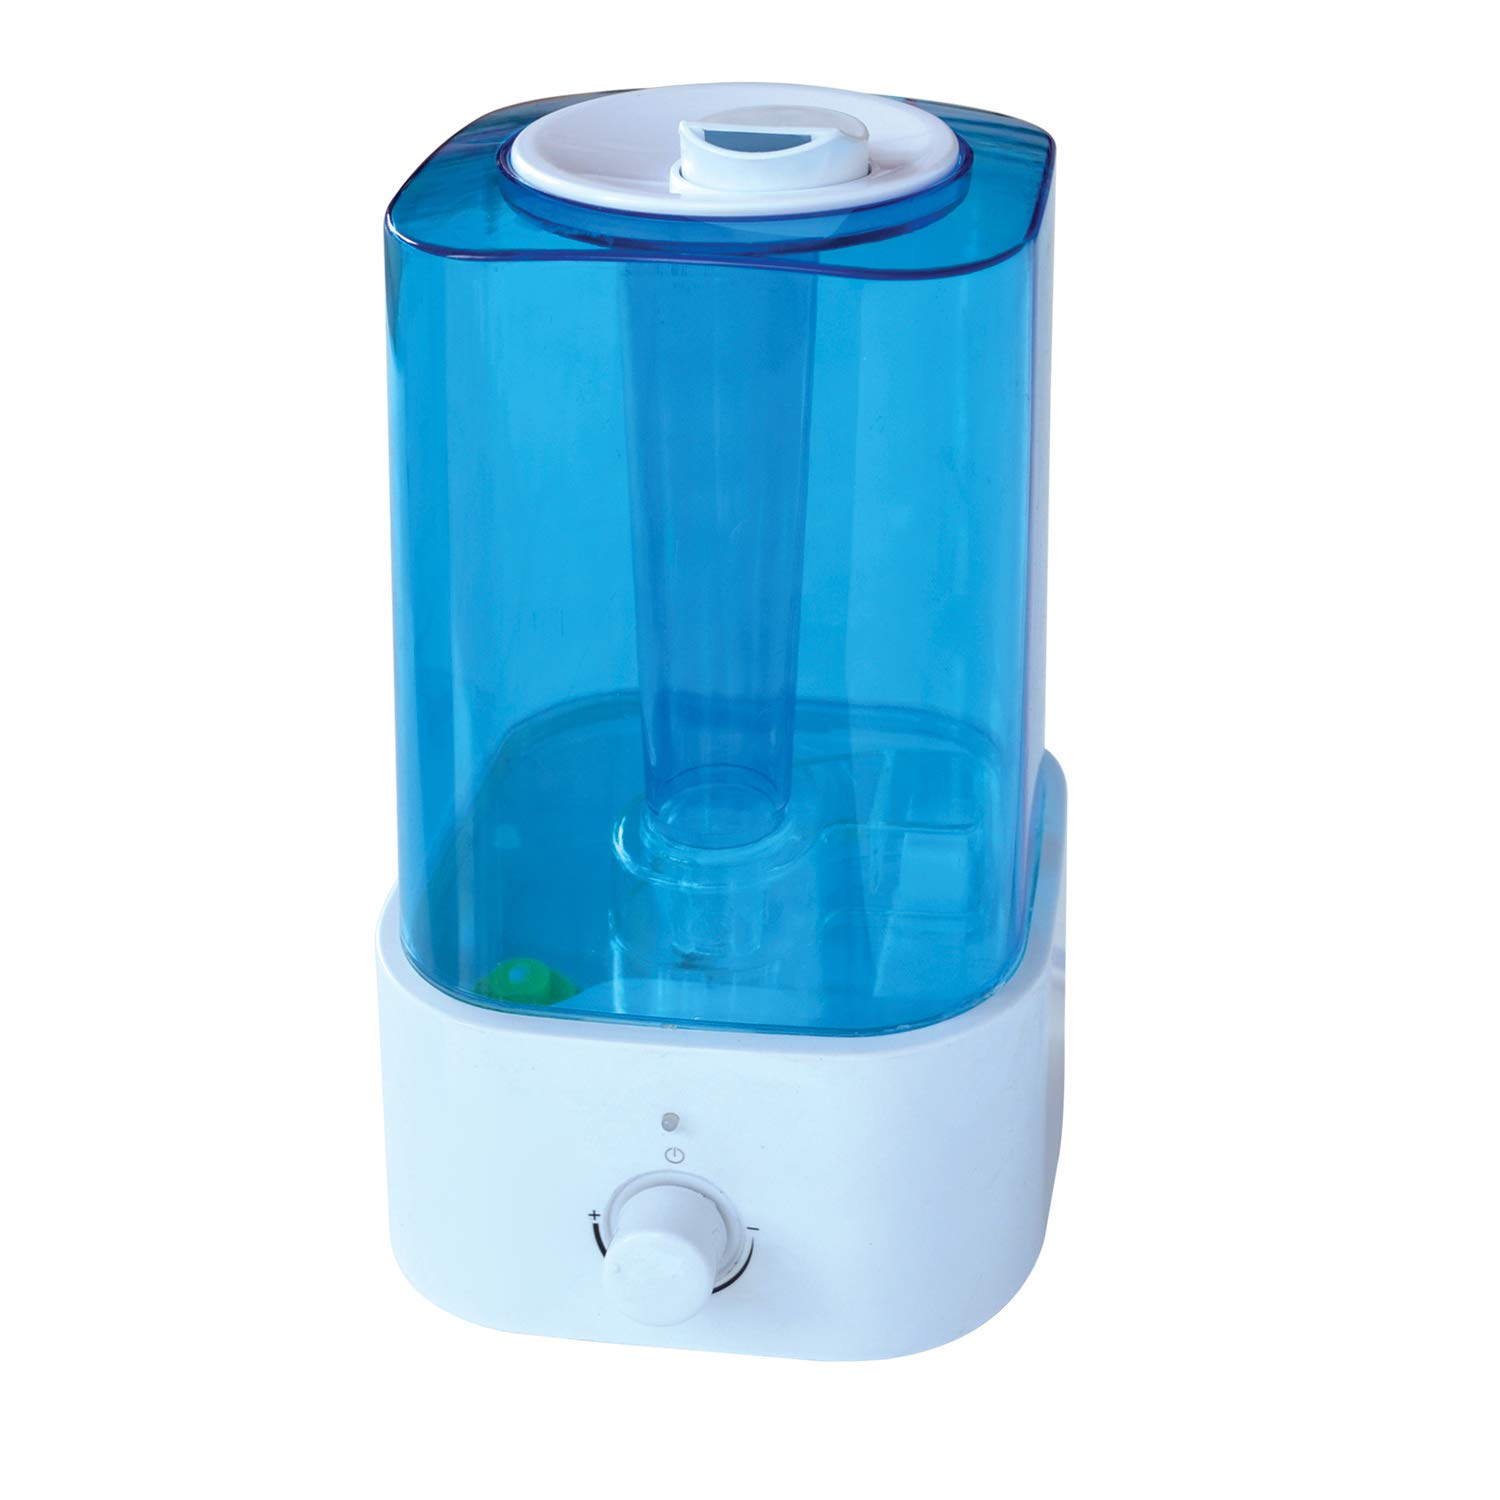 MIFAVOR Cool Mist Humidifier, Ultrasonic Whisper Quiet Humidifiers with Anti Slip Handle for Bedroom Babies Home (2L/0.5Gallon)